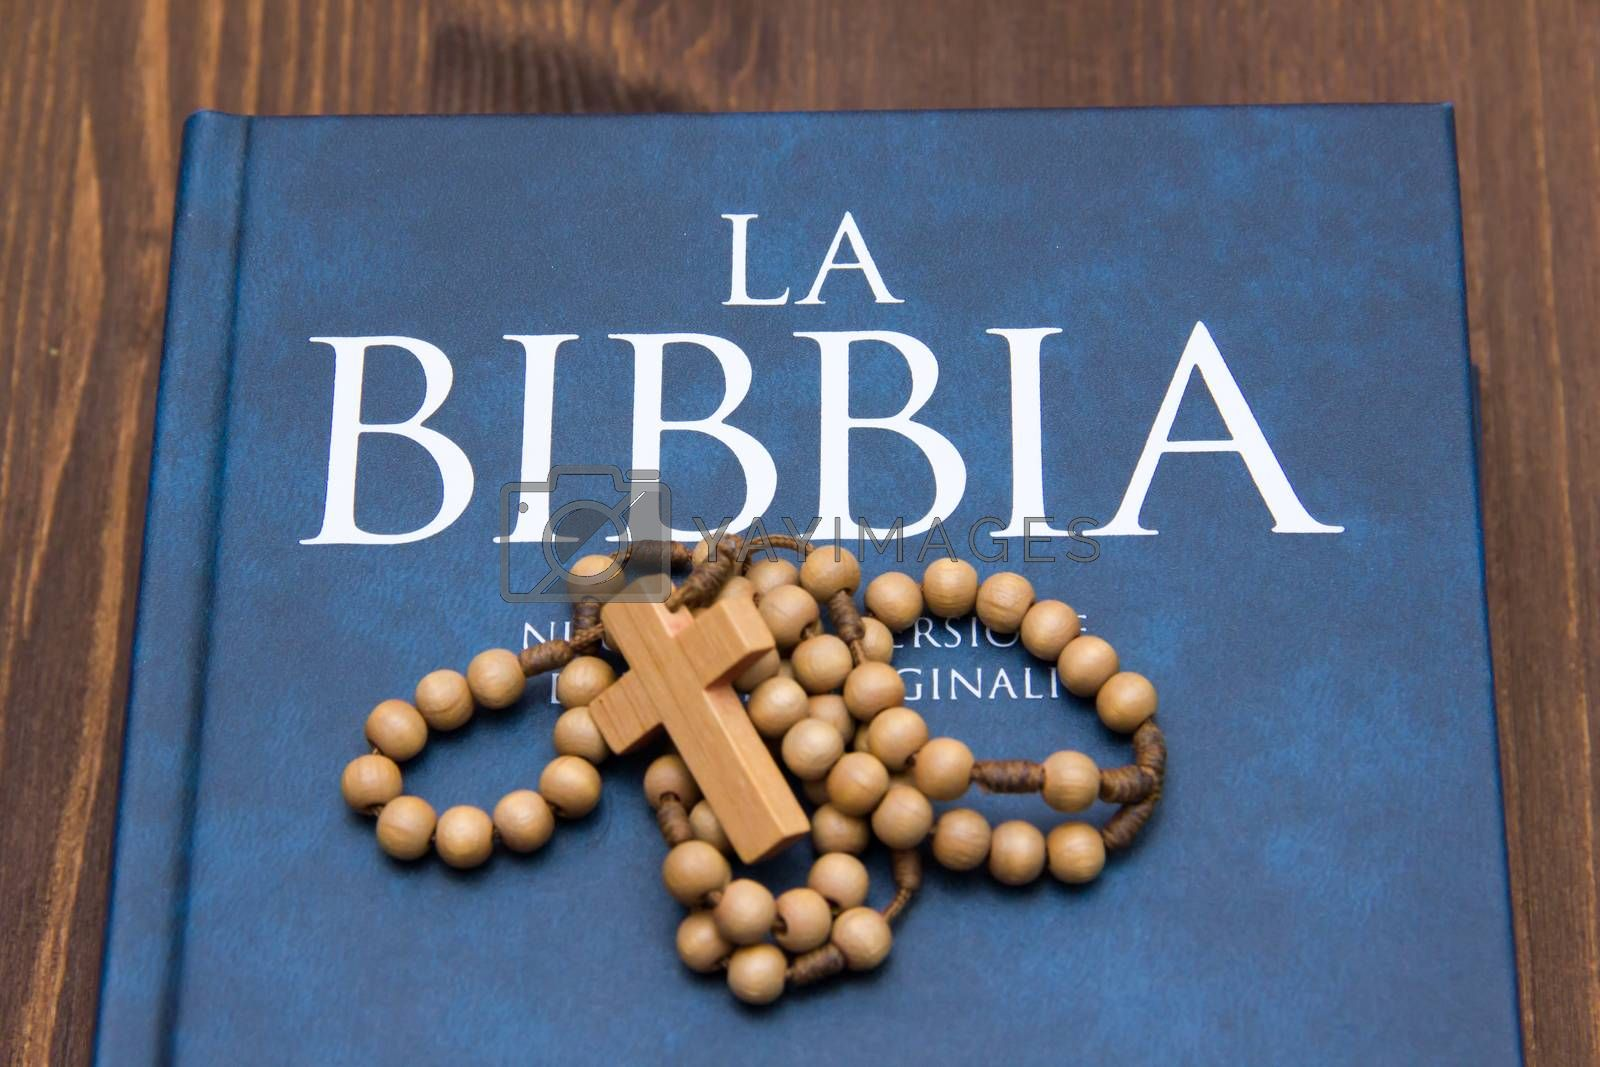 Bible with crucifix on wooden table